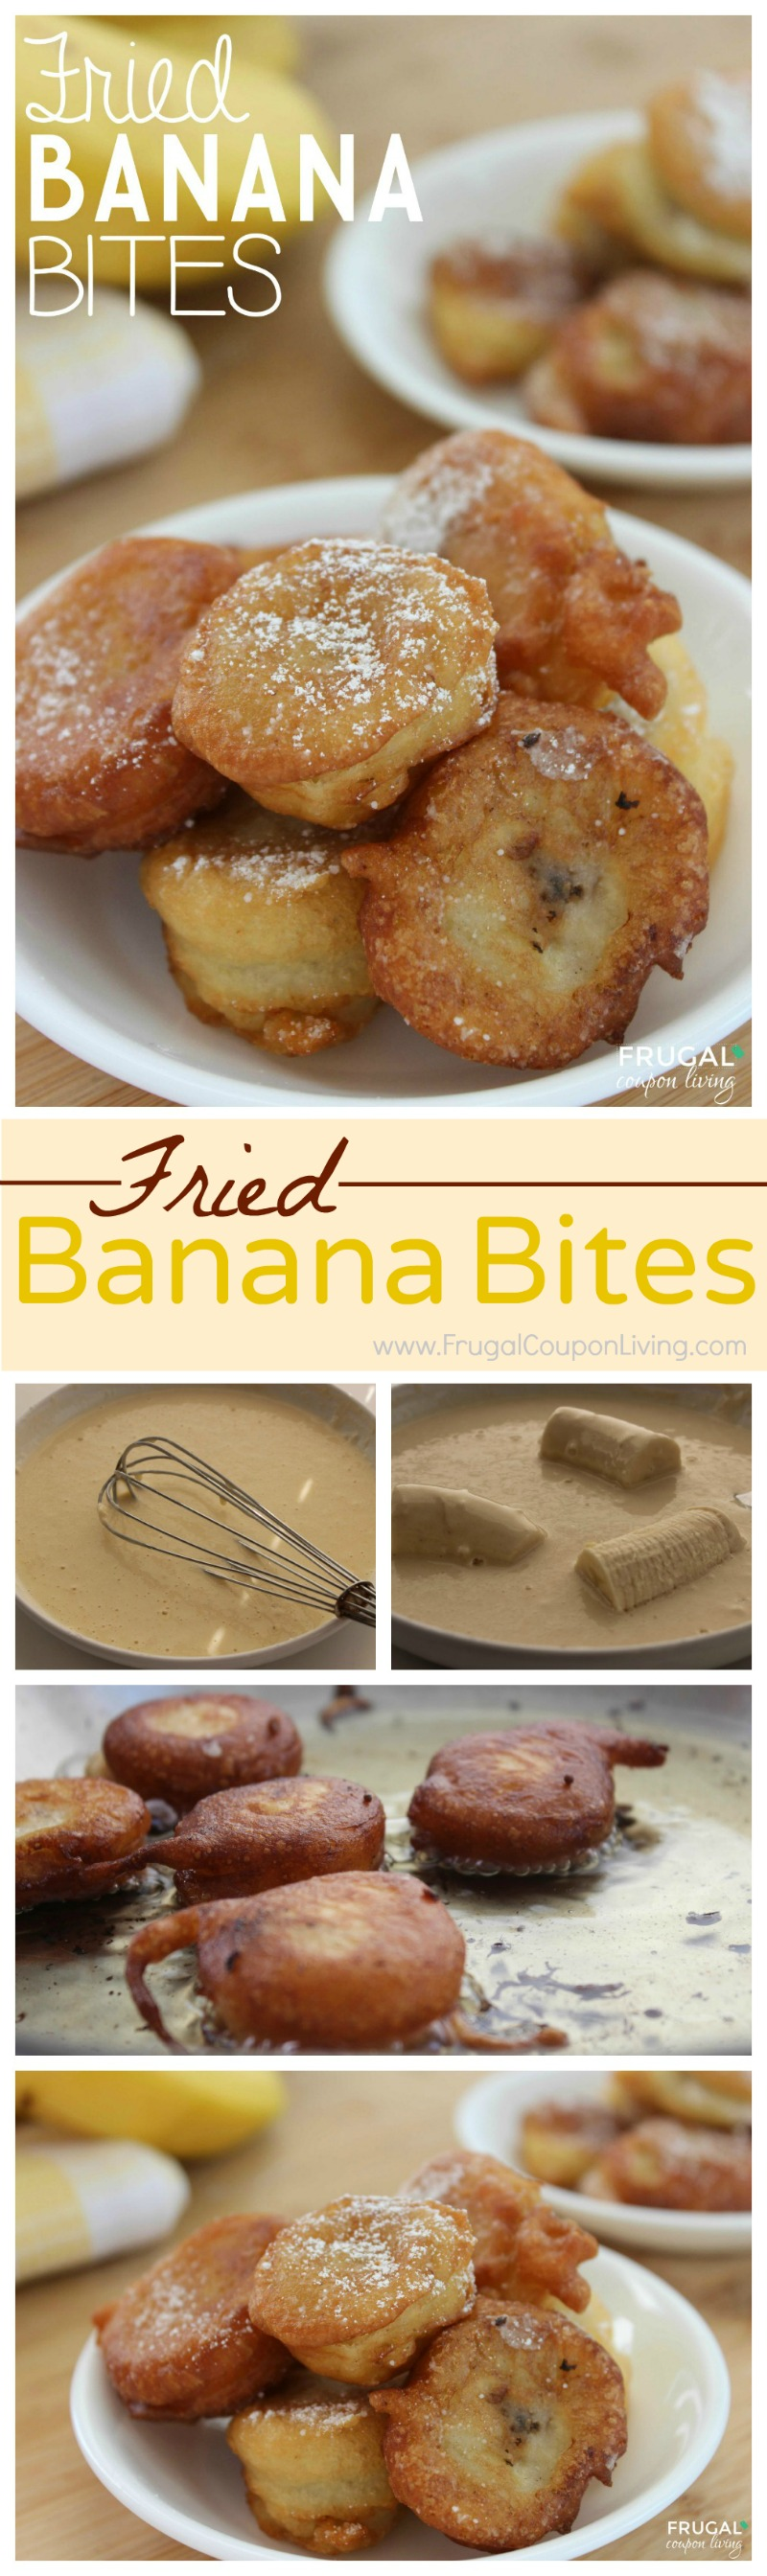 fried-banana-bites-Collage-frugal-coupon-living